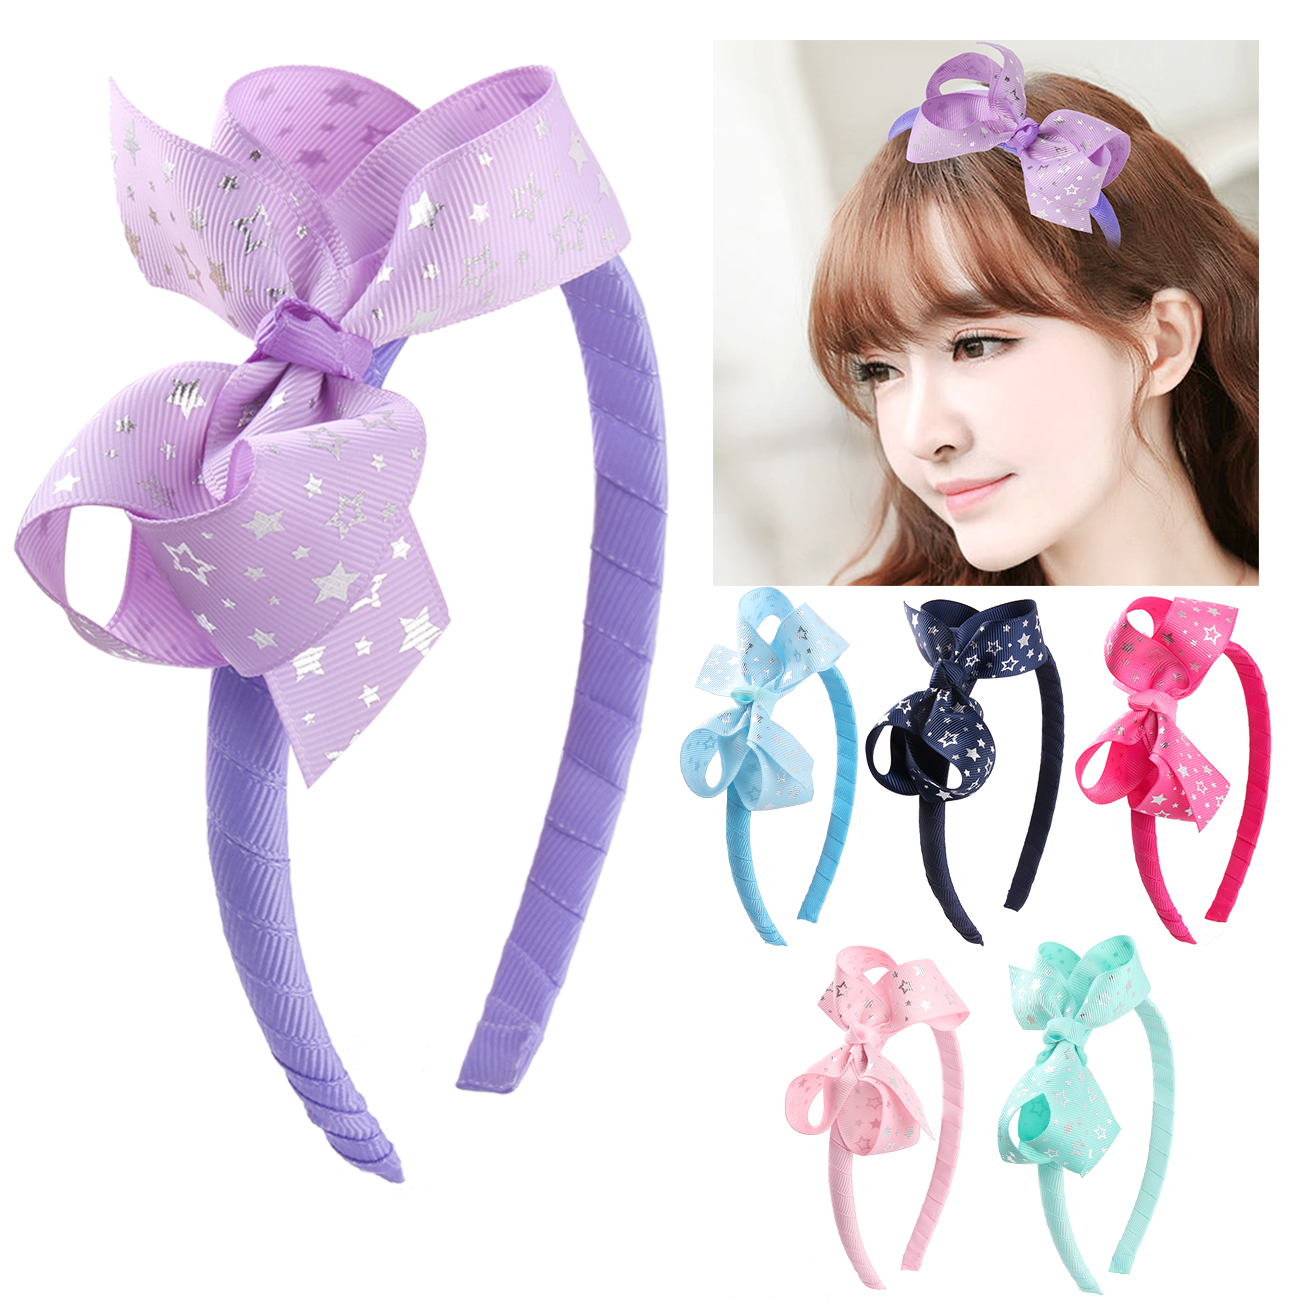 1PC Fabric Ribbon Bow Hairband For Kids Girls Cute Handmade Hard Satin Covered Headband Hair Accessories Hair Hoop in Hair Accessories from Mother Kids